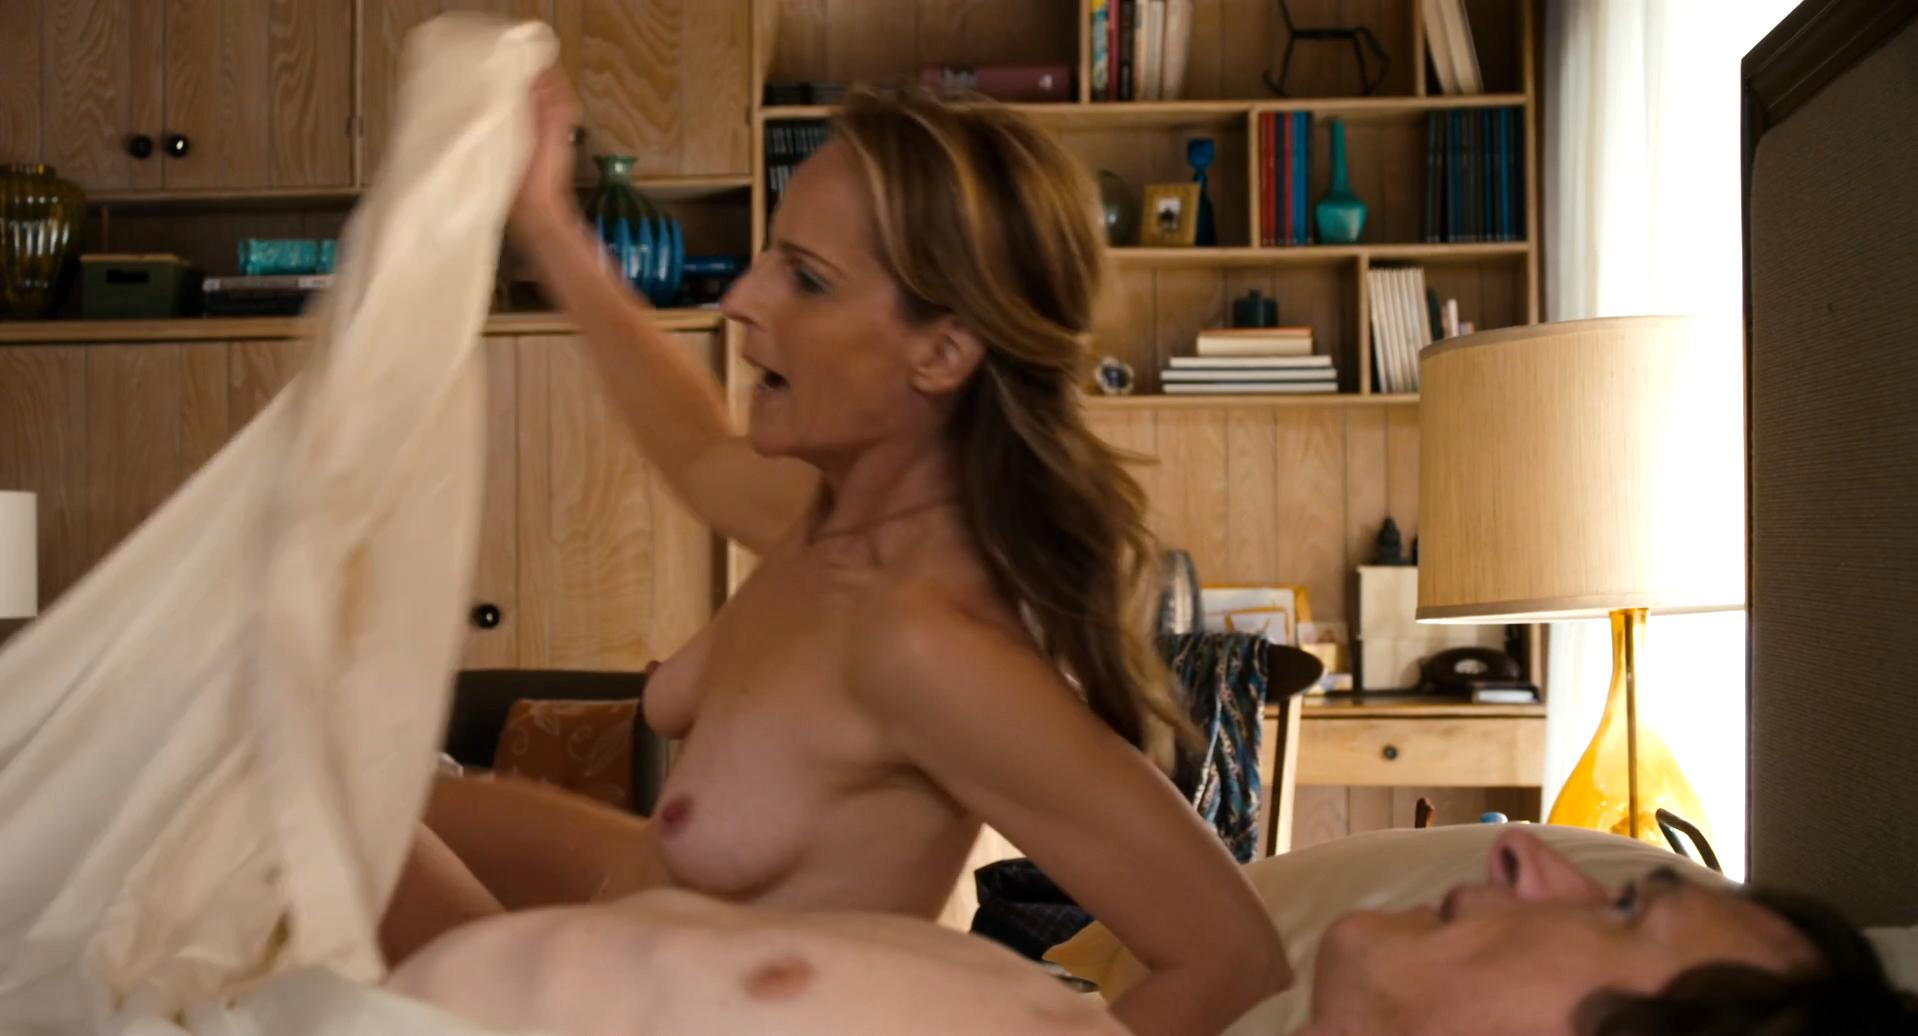 Helen hunt nude naked pics and sex scenes at skin